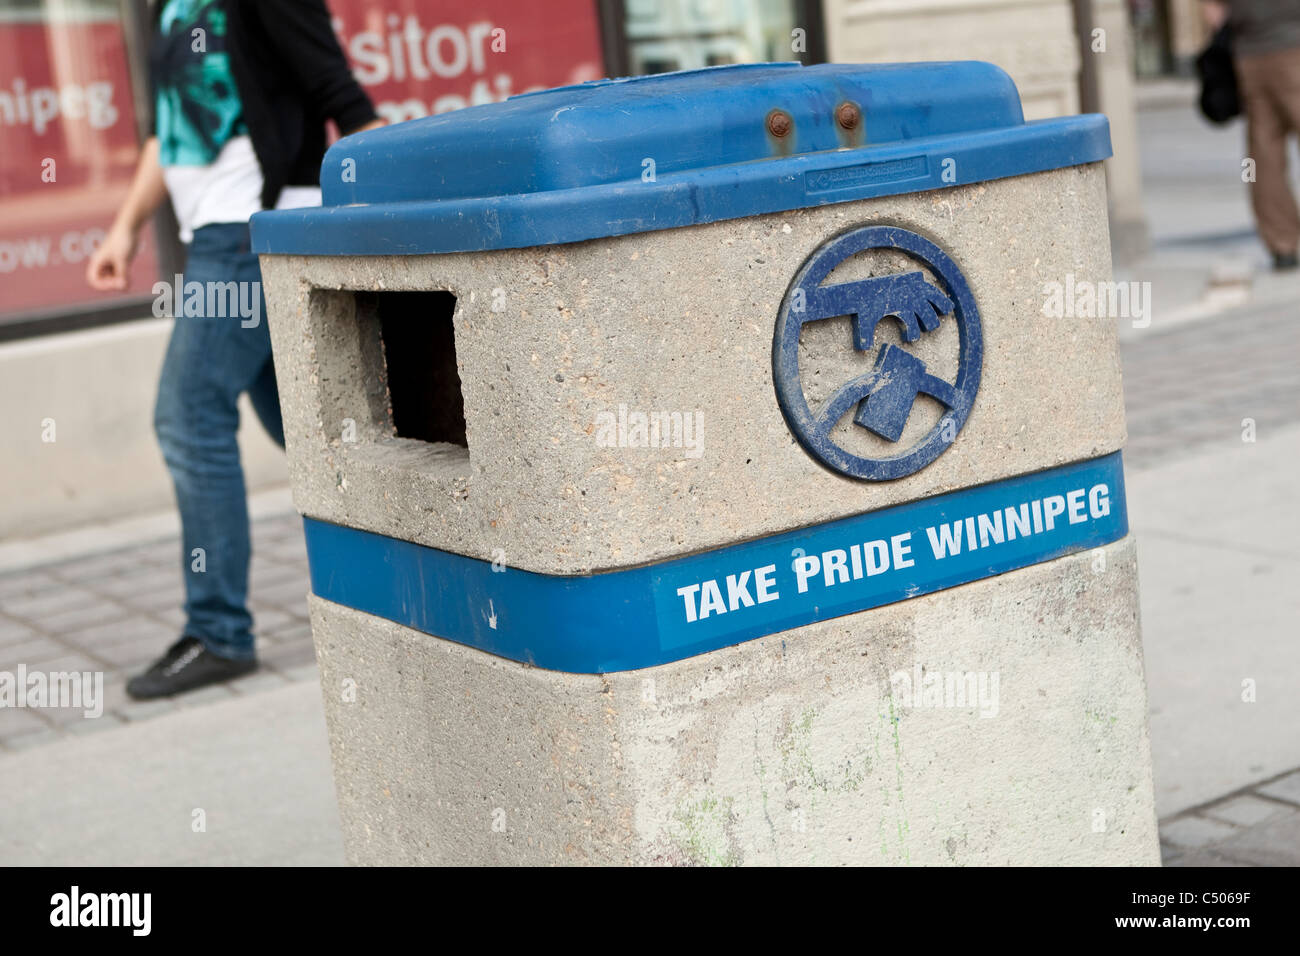 A street garbage can is pictured on Portage avenue in Winnipeg Sunday May 22, 2011. - Stock Image